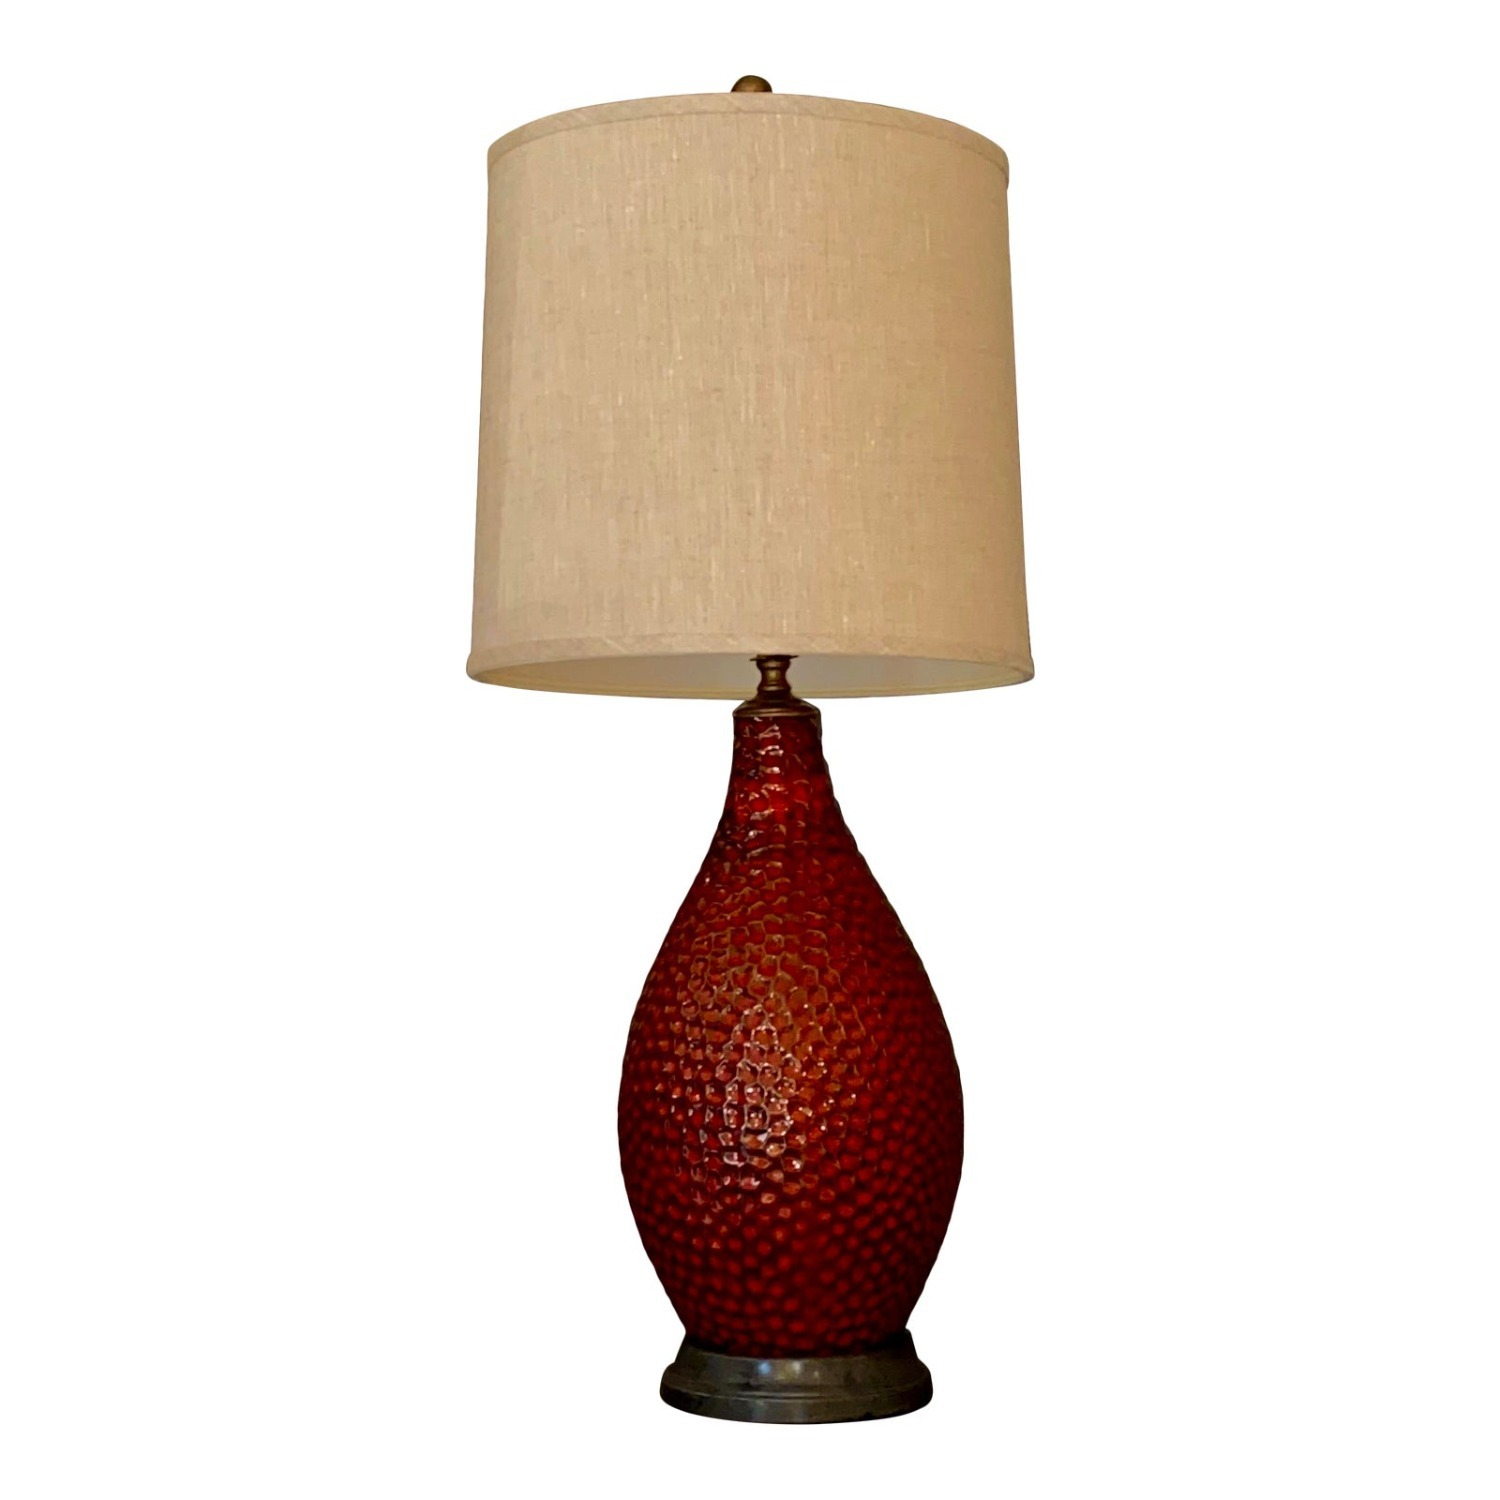 Vintage French Textured Red Ceramic Glazed Lamp - image-4